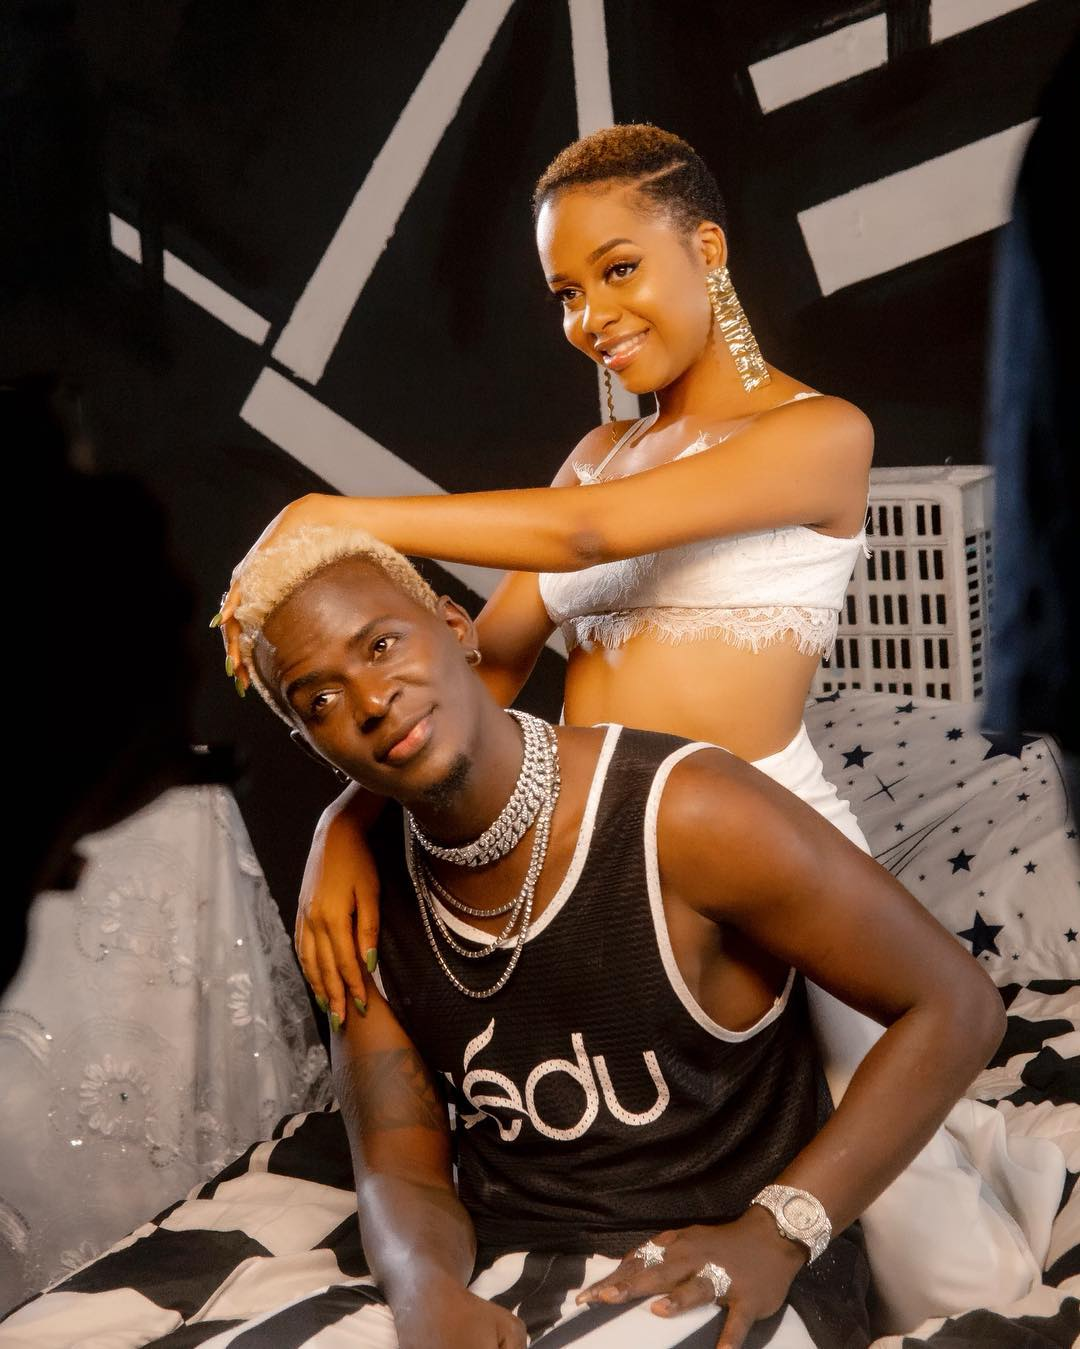 Nandy with Willy Paul - 'I 'kuna' one specific thing,' Willy Paul defends his thirsty ways